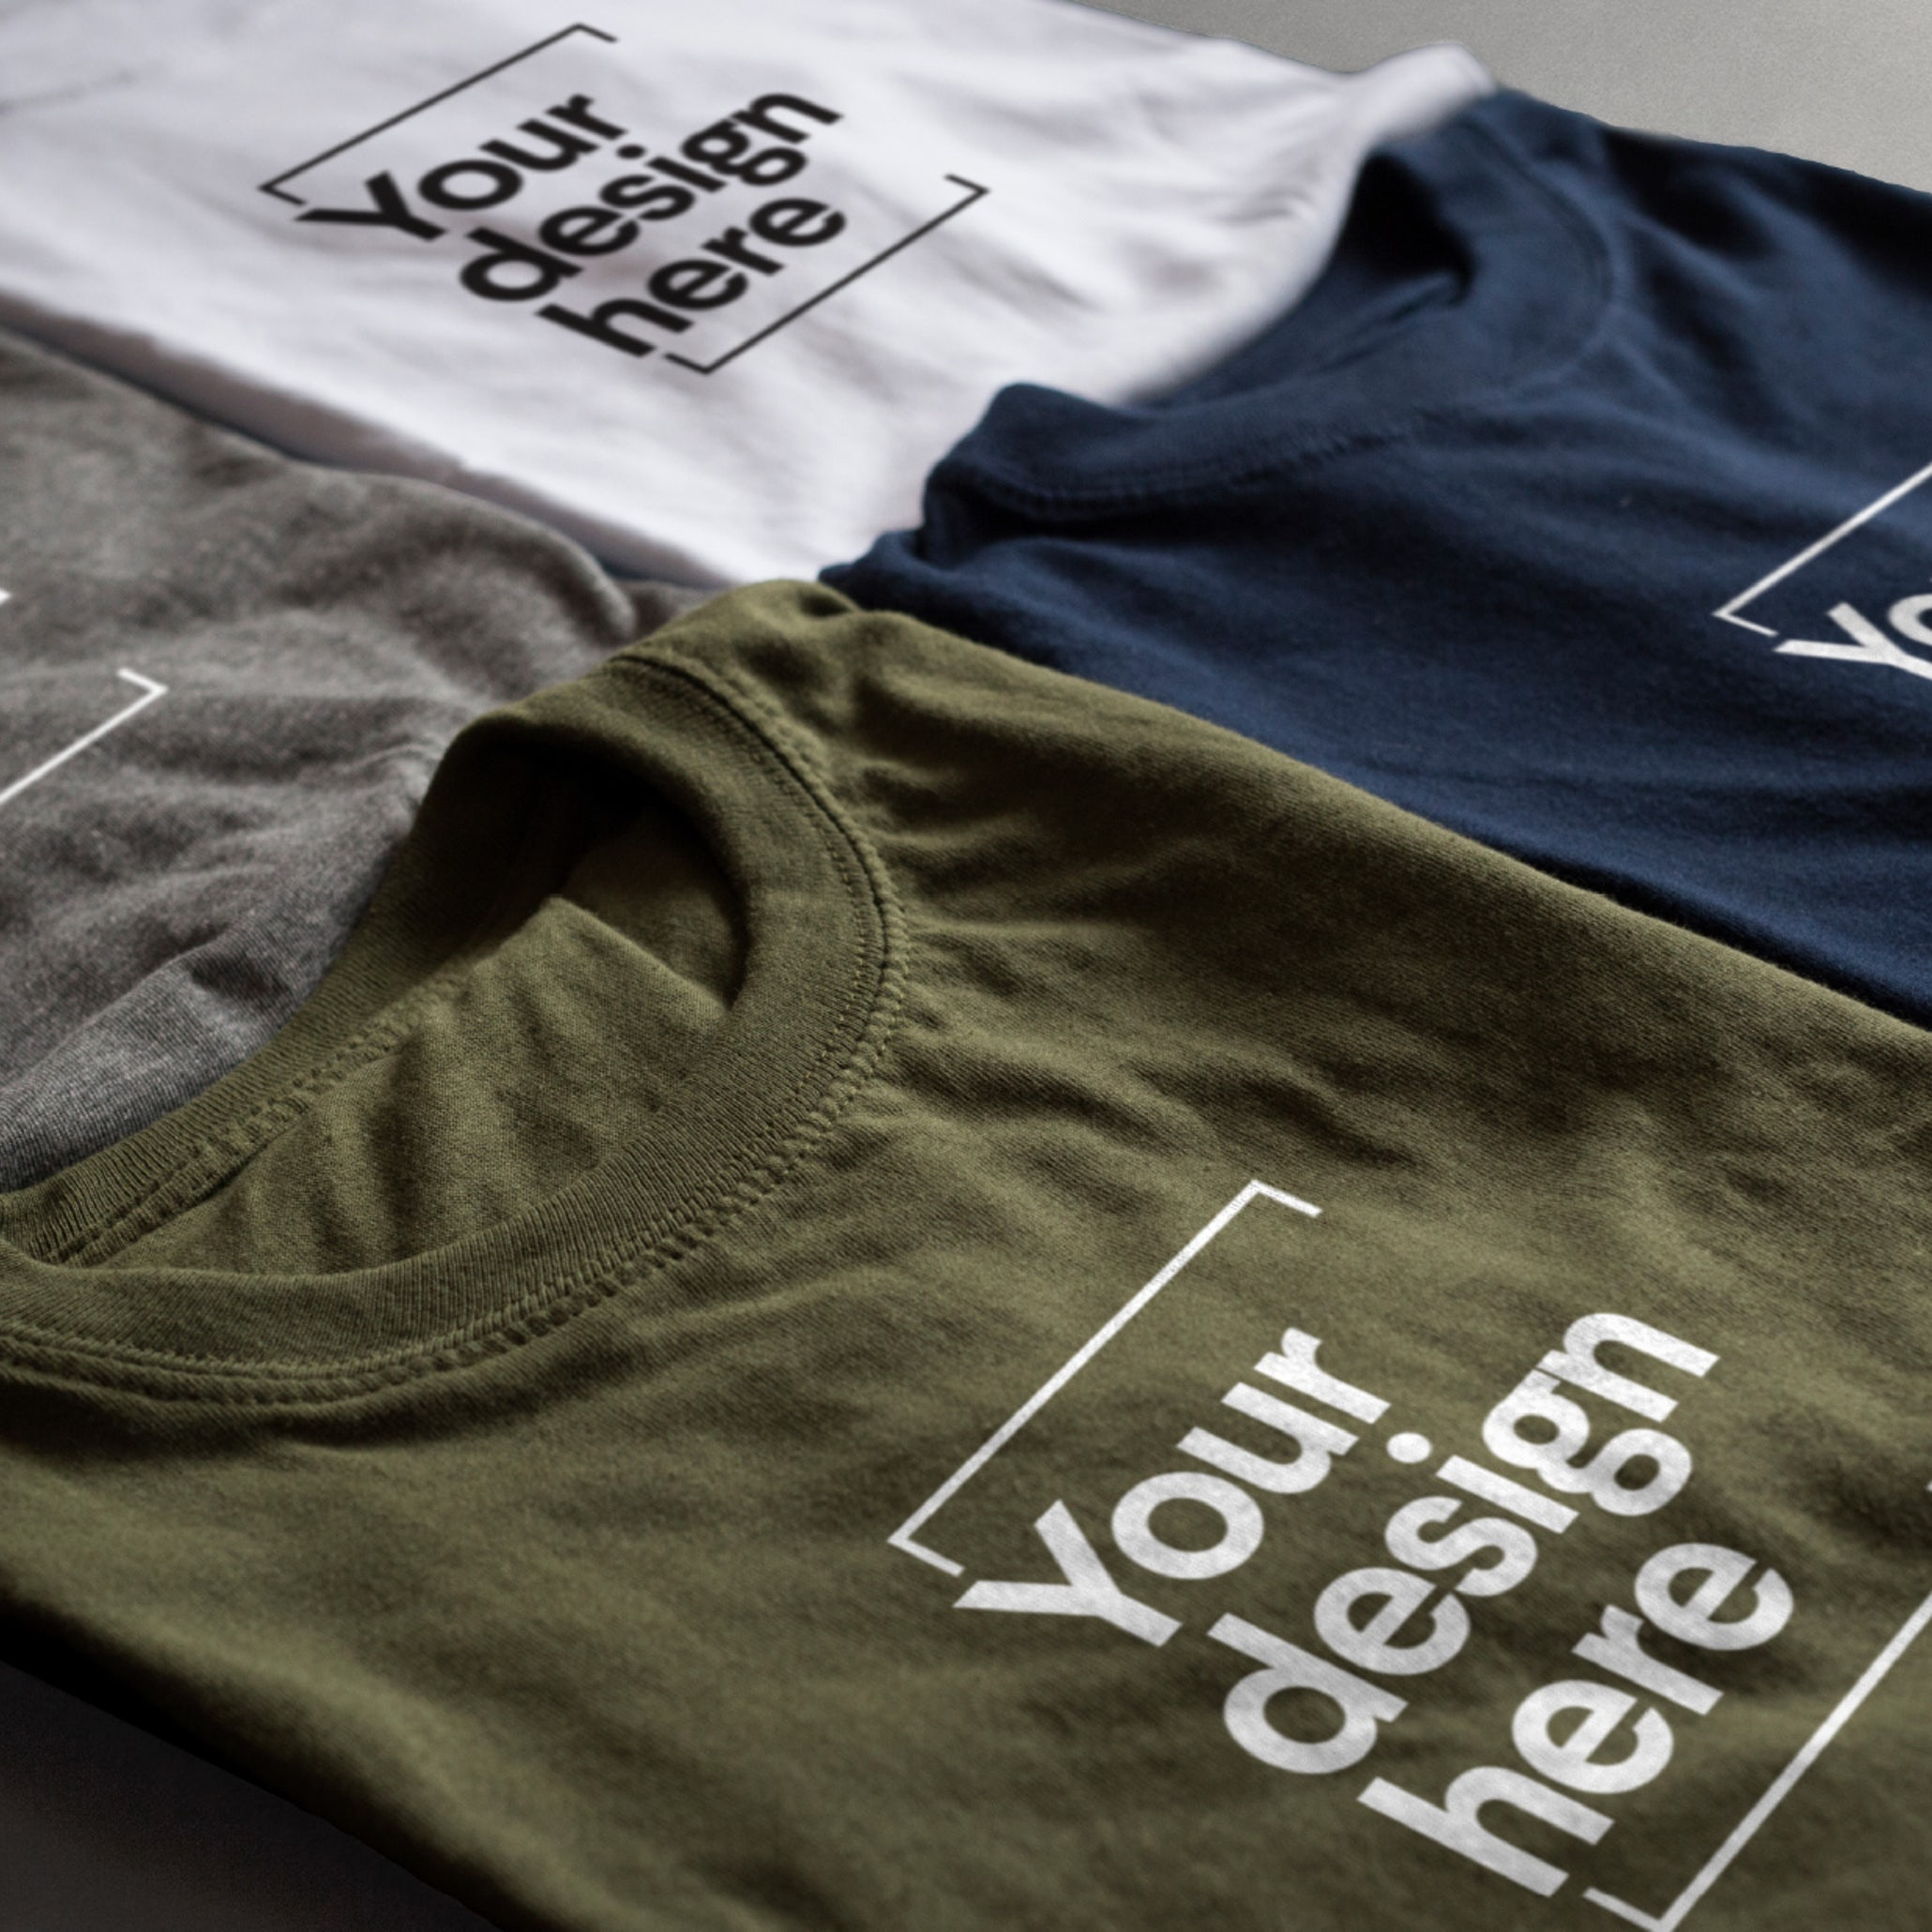 5 Design Ideas to Make Your Custom Shirt Stand Out